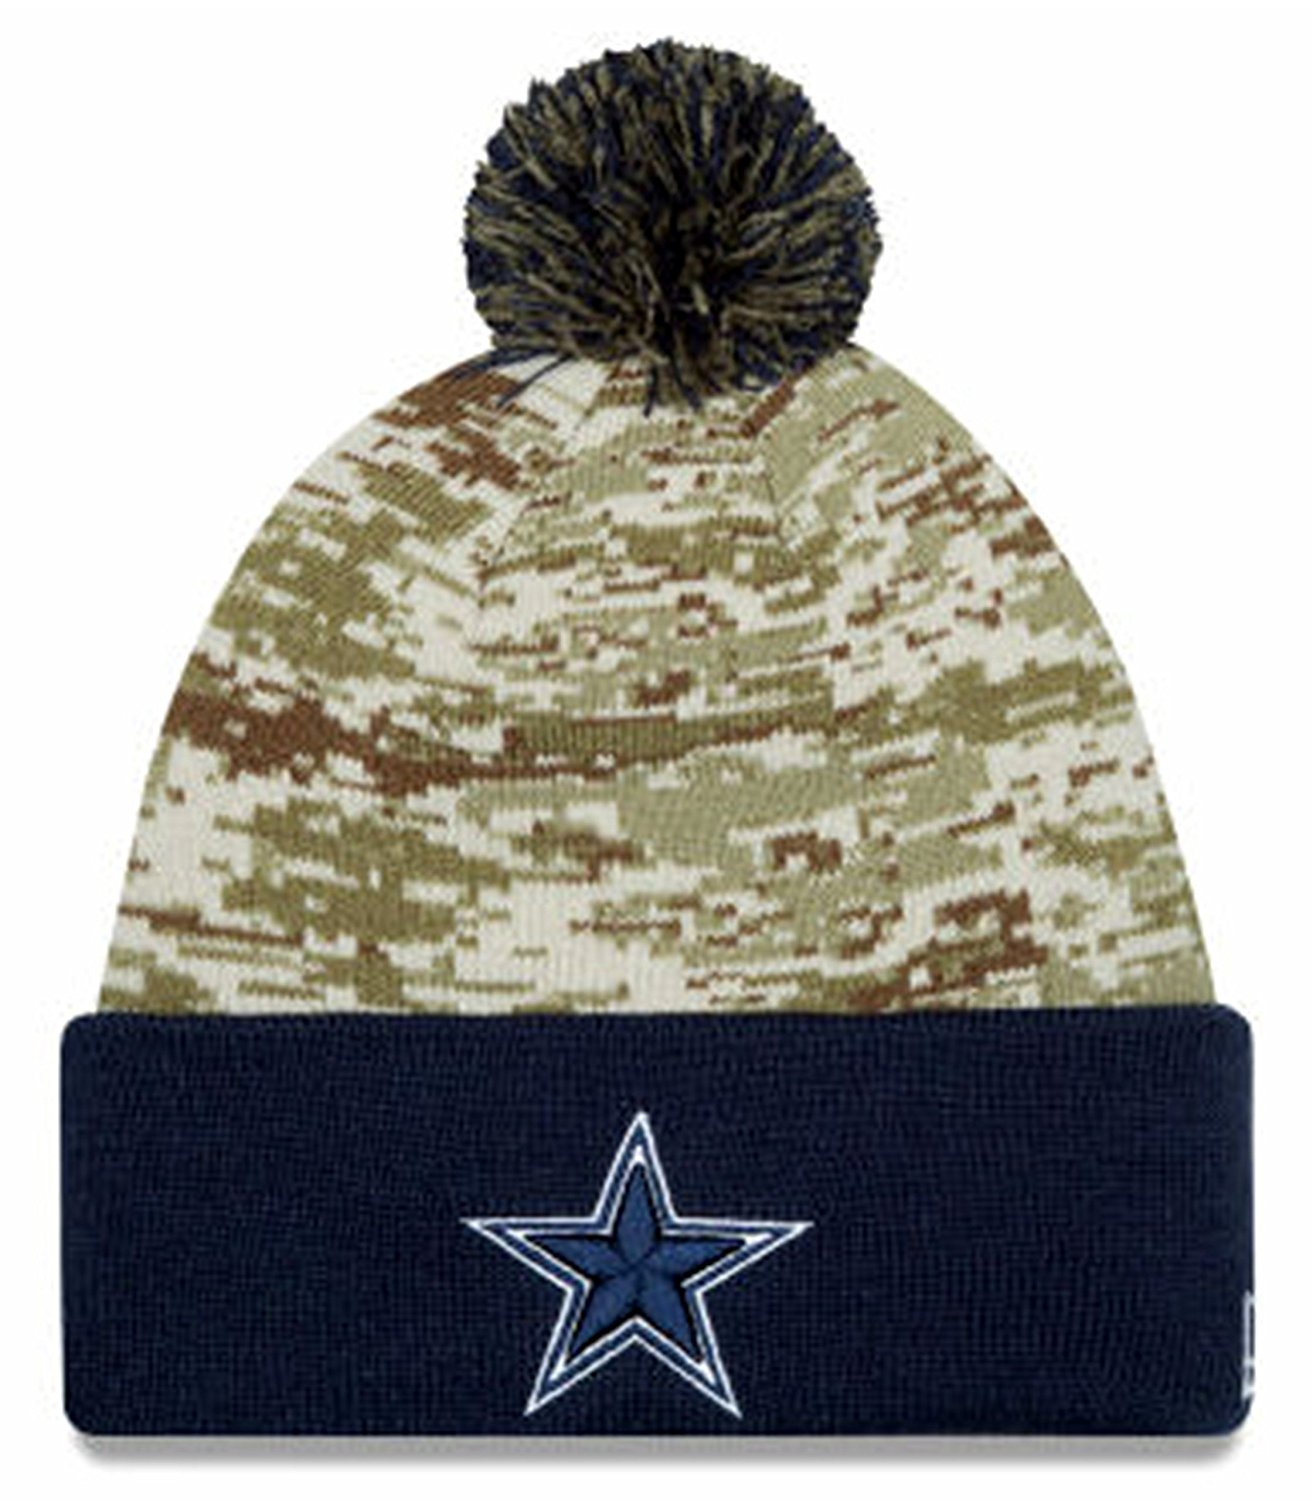 6067148a46a91 ... reduced get quotations dallas cowboys new era 2015 salute to service on  field pom knit hat